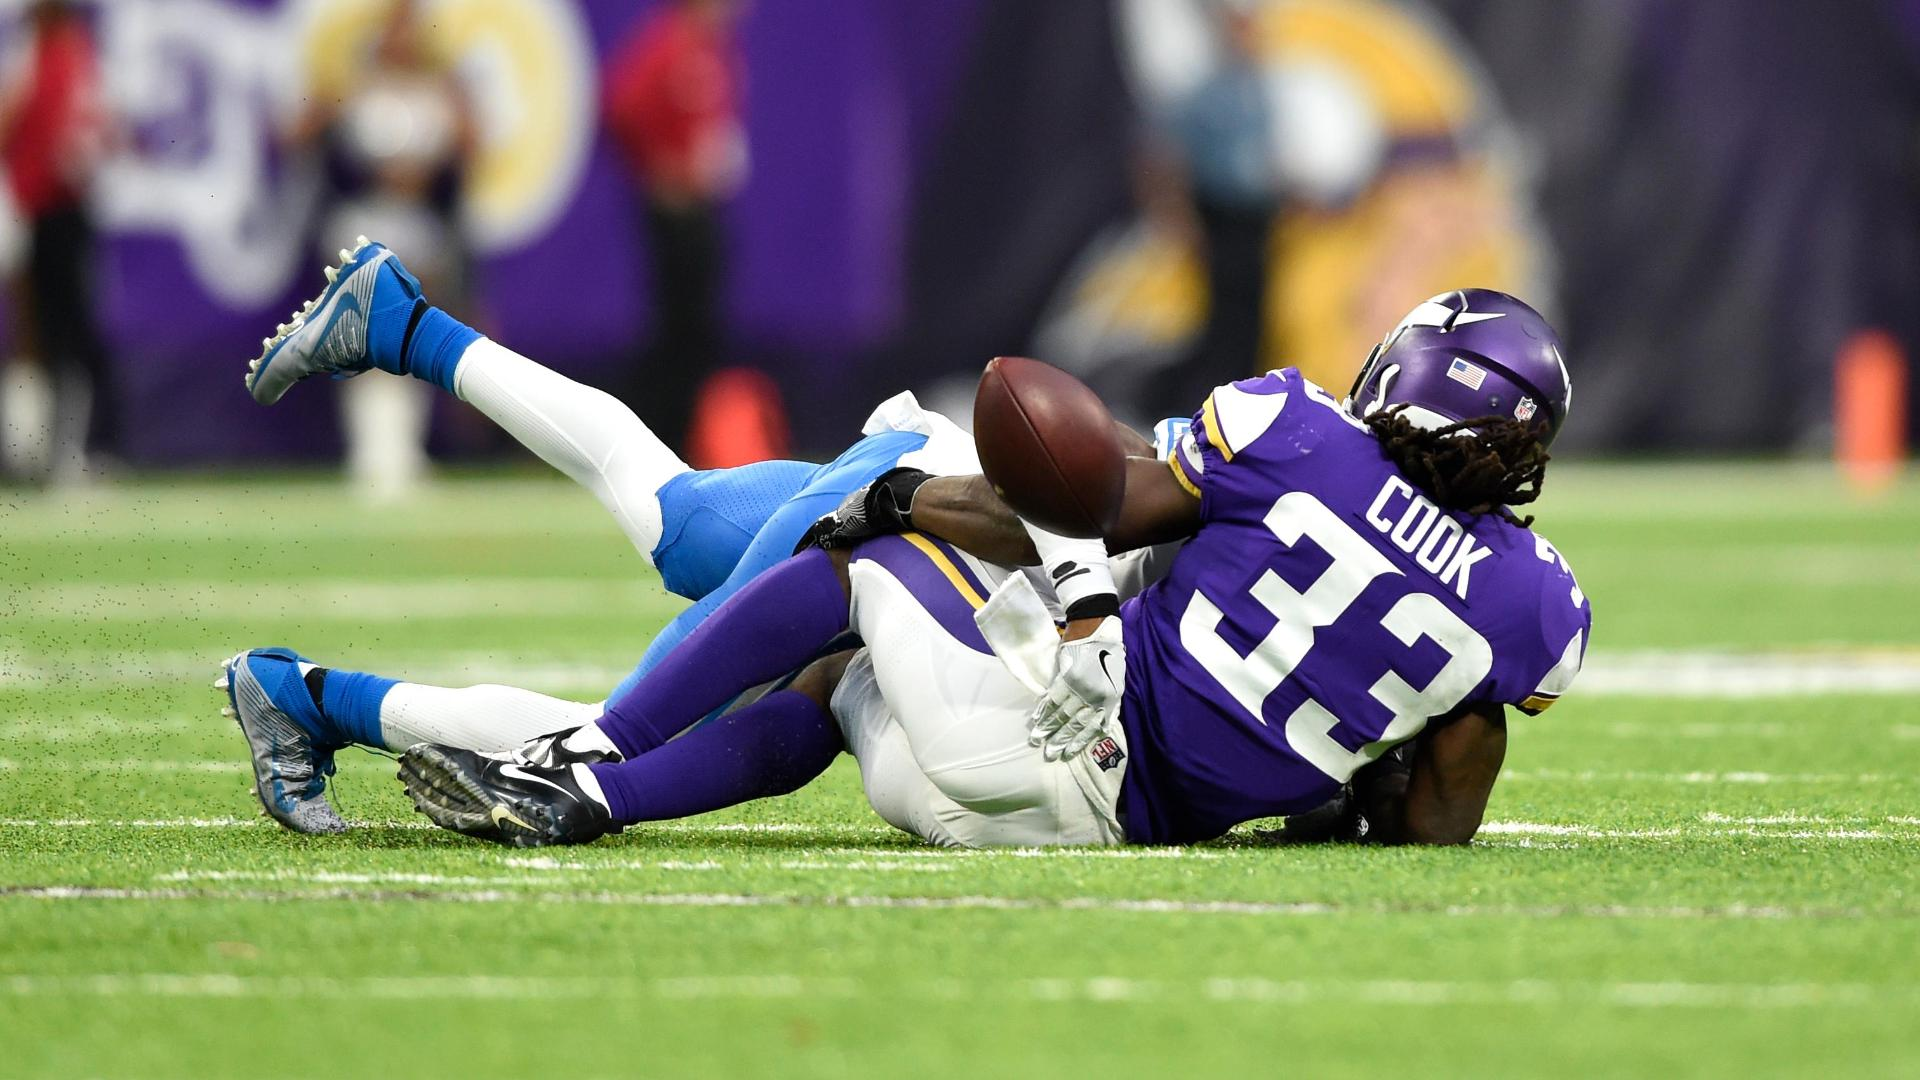 Scouting the Opponent: Observations of the Minnesota Vikings' offense